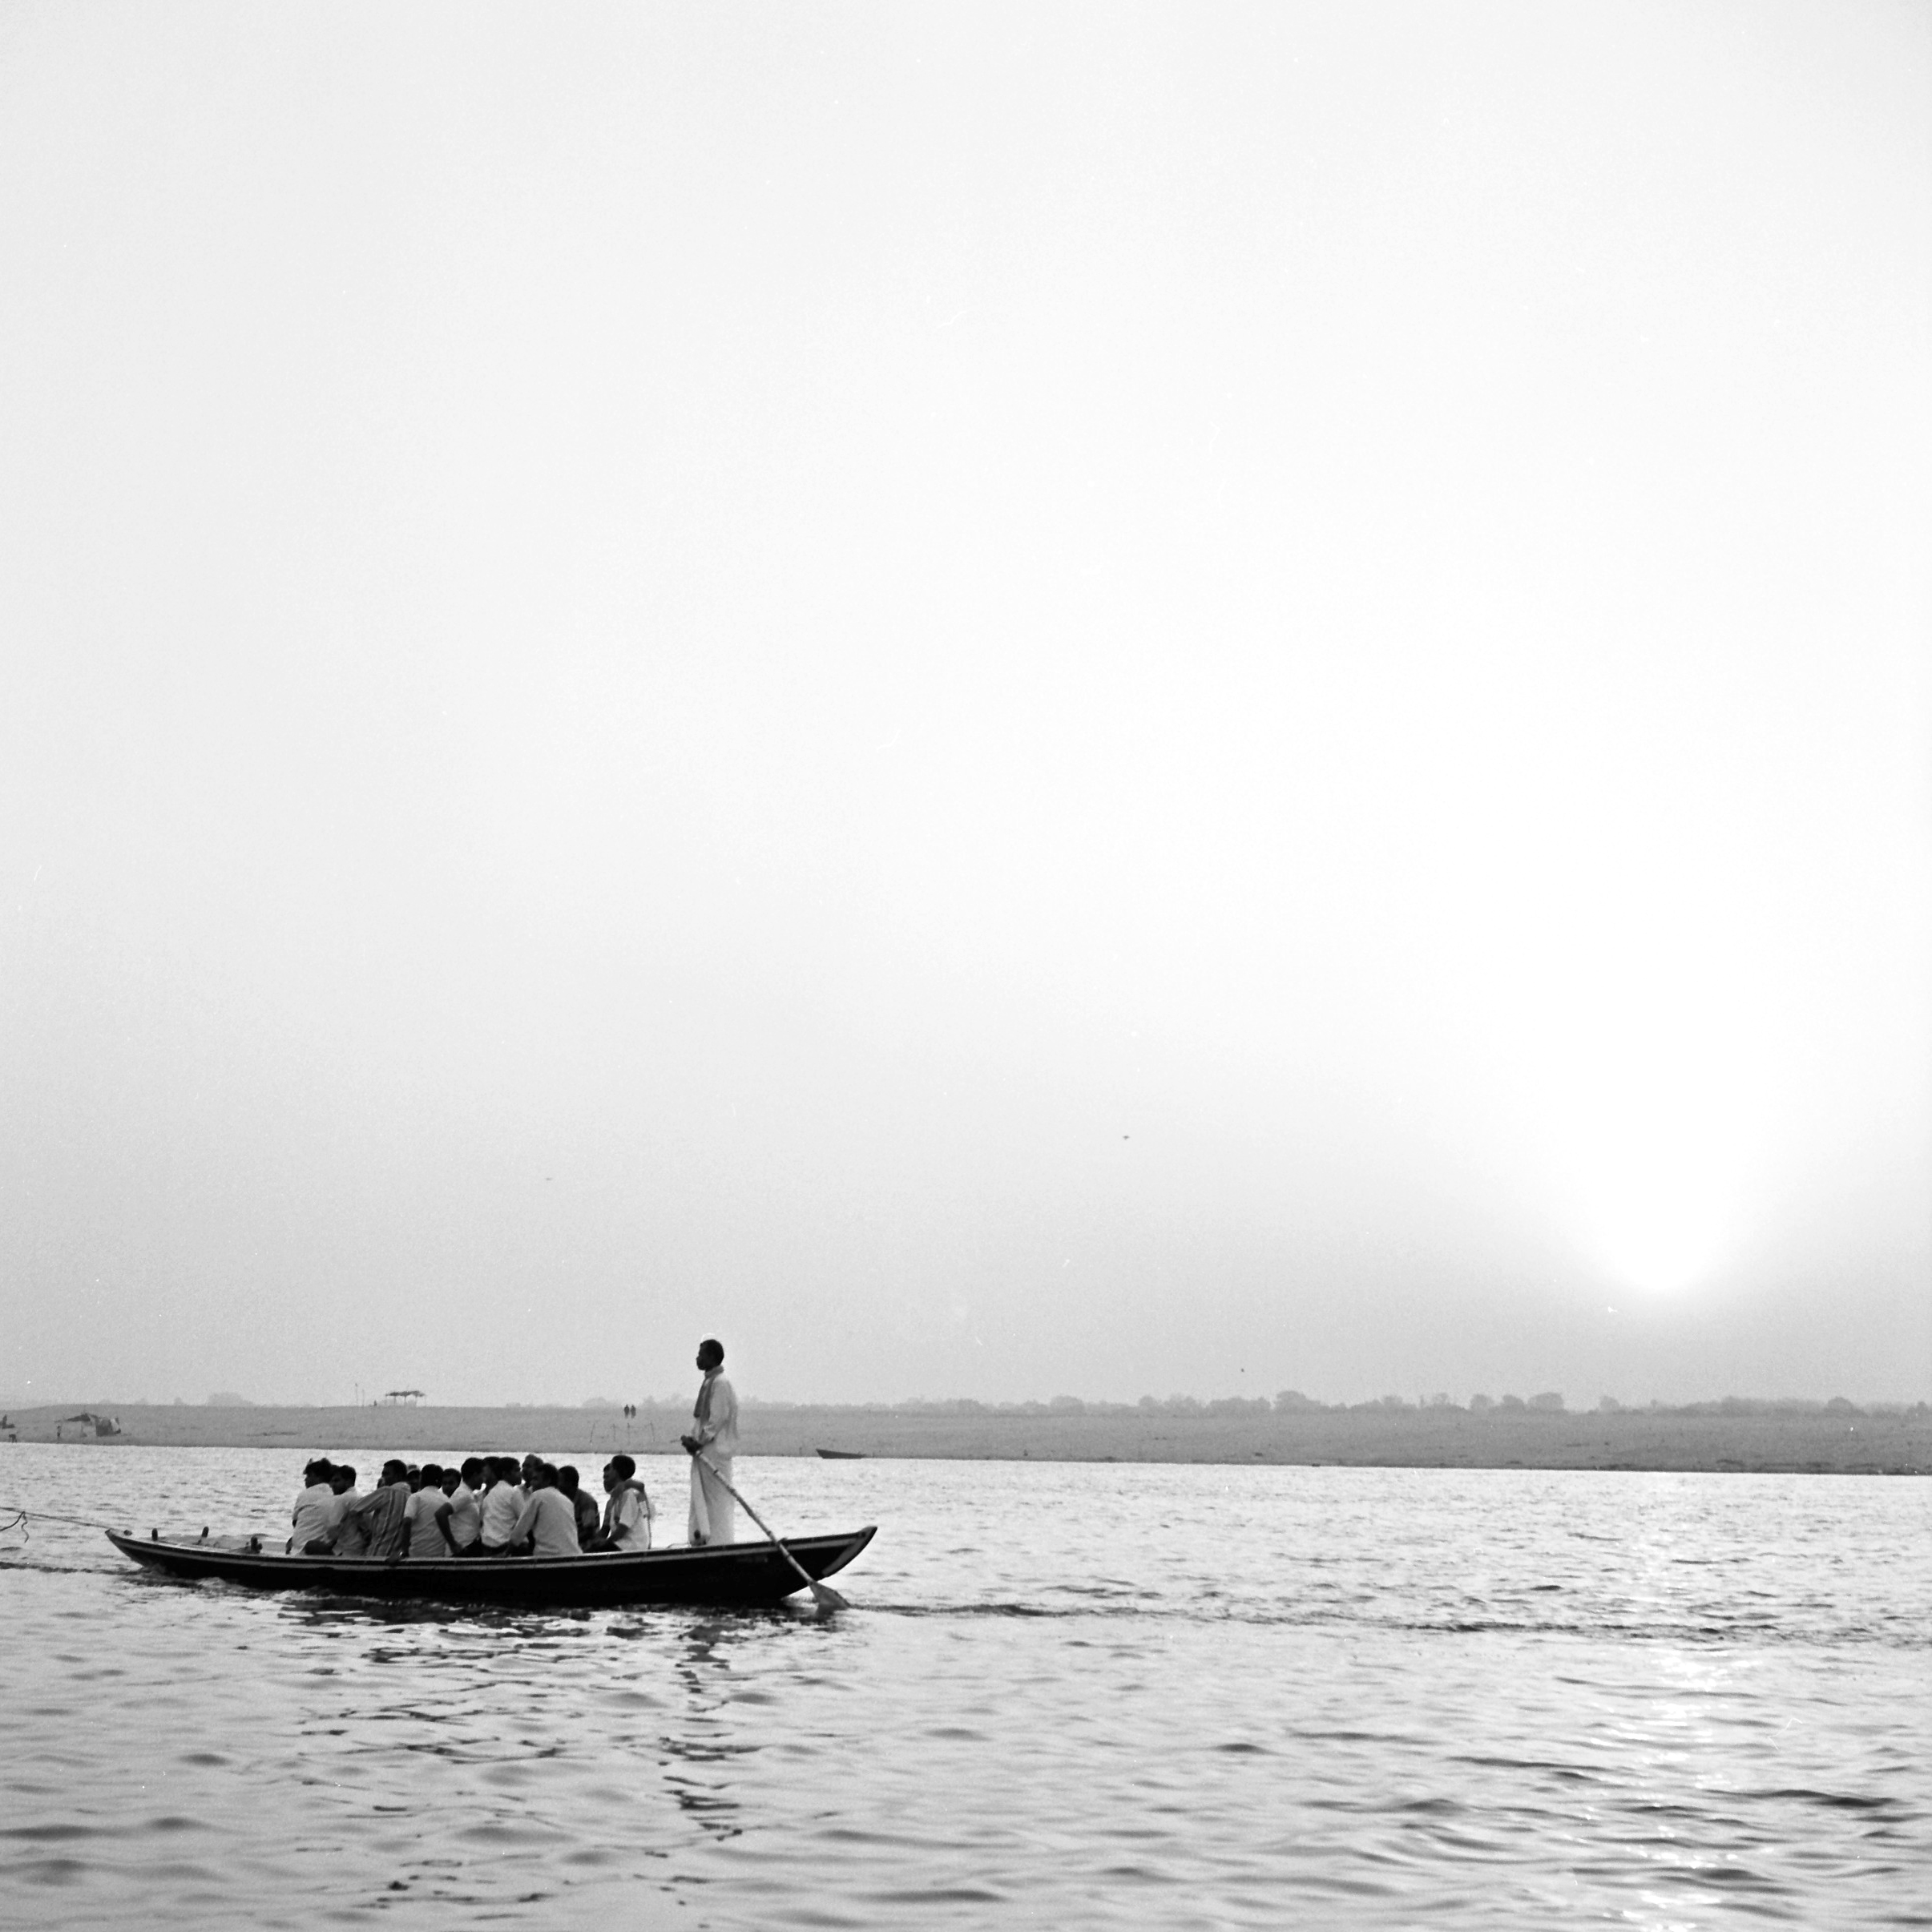 ganges-boat-india.jpg